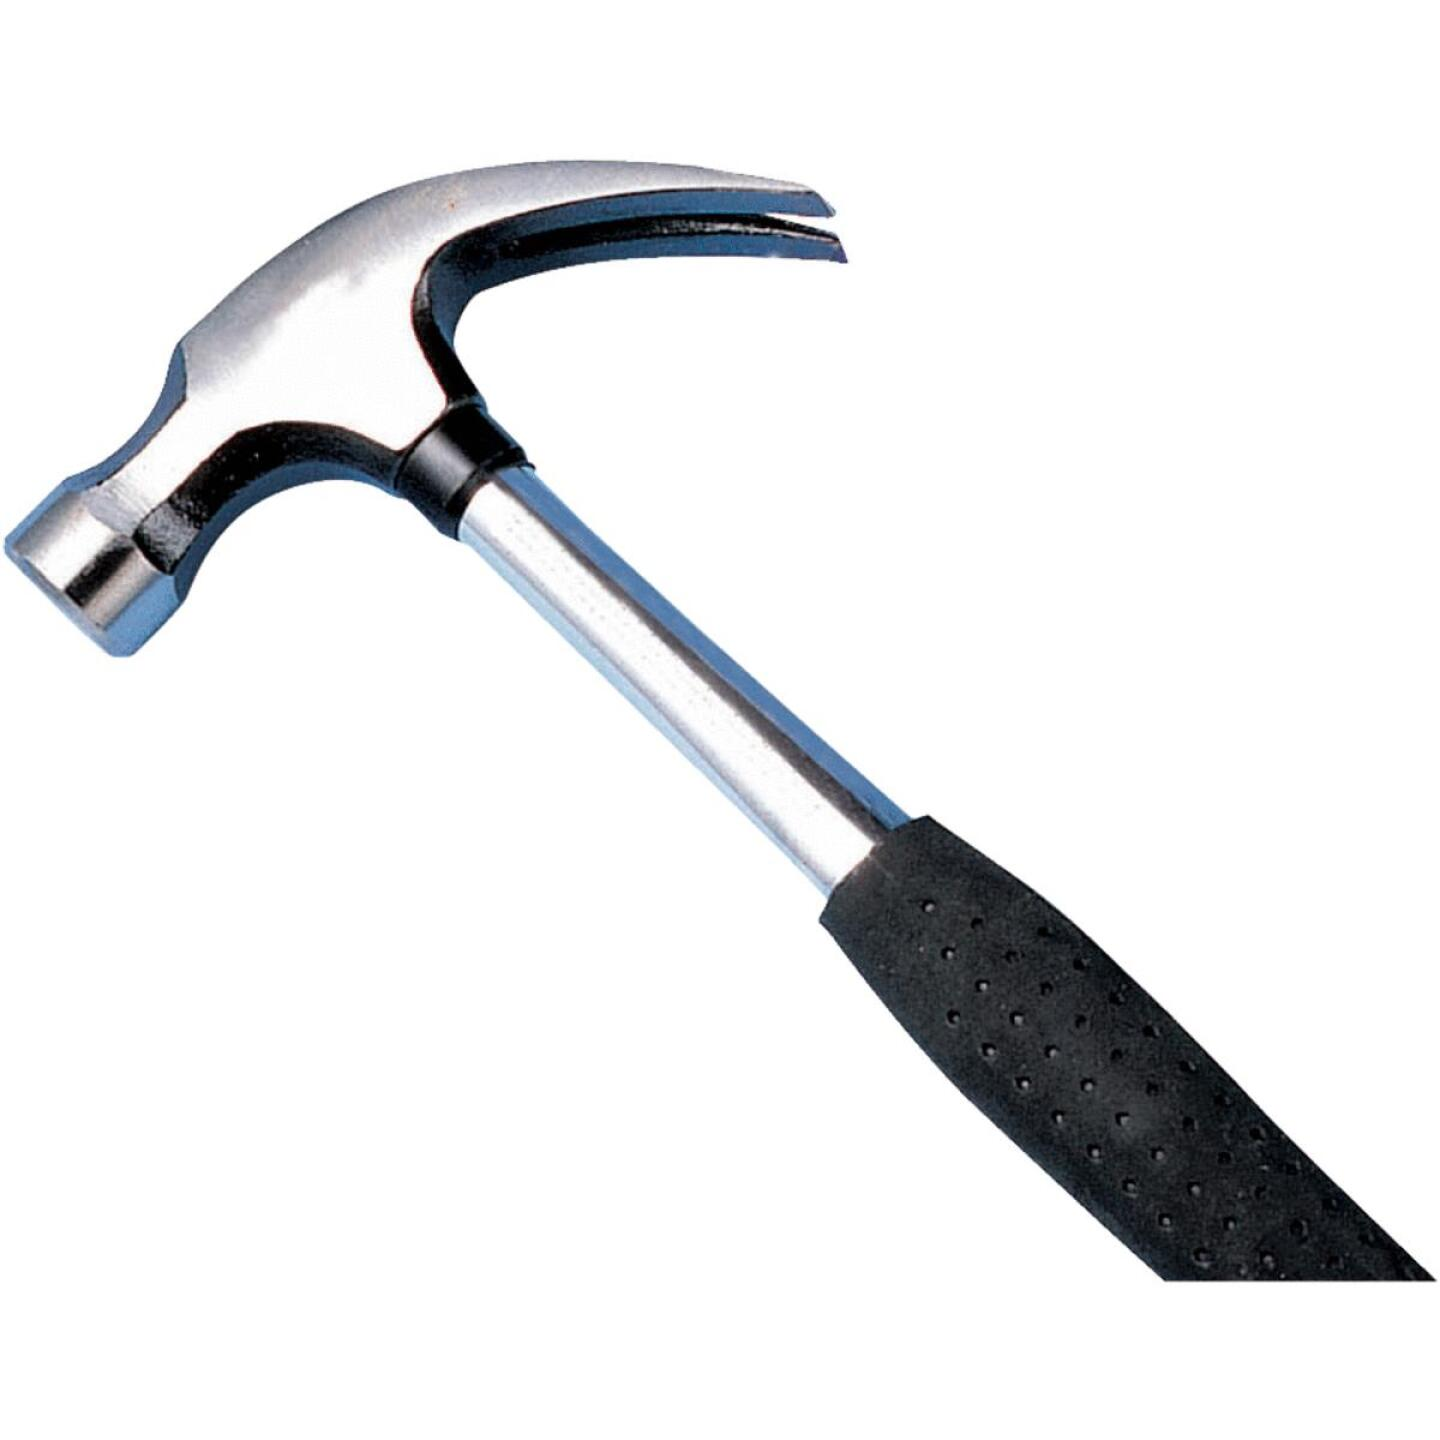 Do it 16 Oz. Smooth-Face Curved Claw Hammer with Steel Handle Image 1